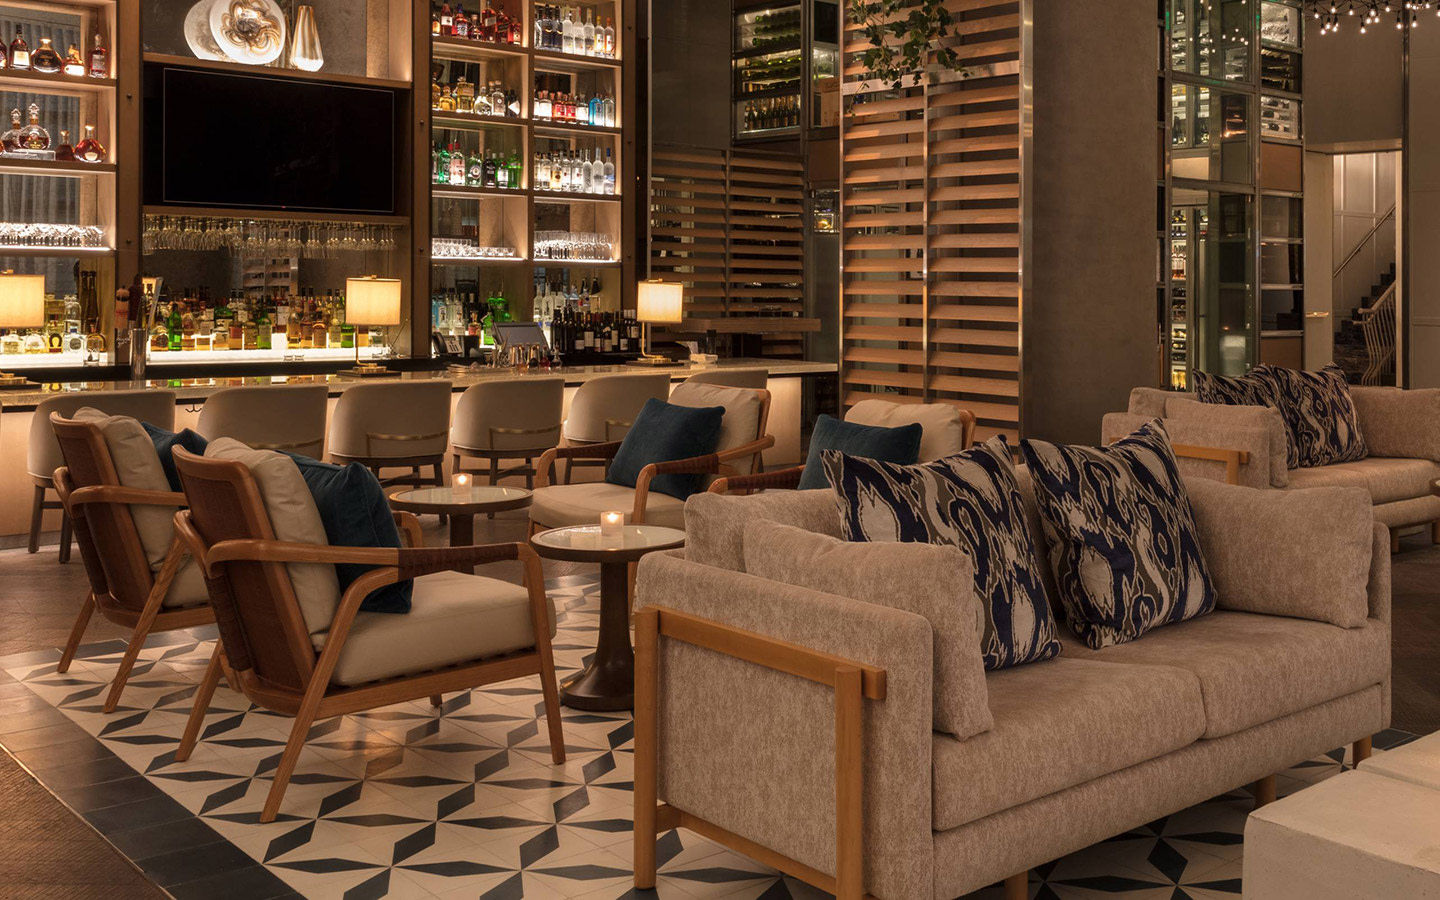 Lounge at Boulud Sud